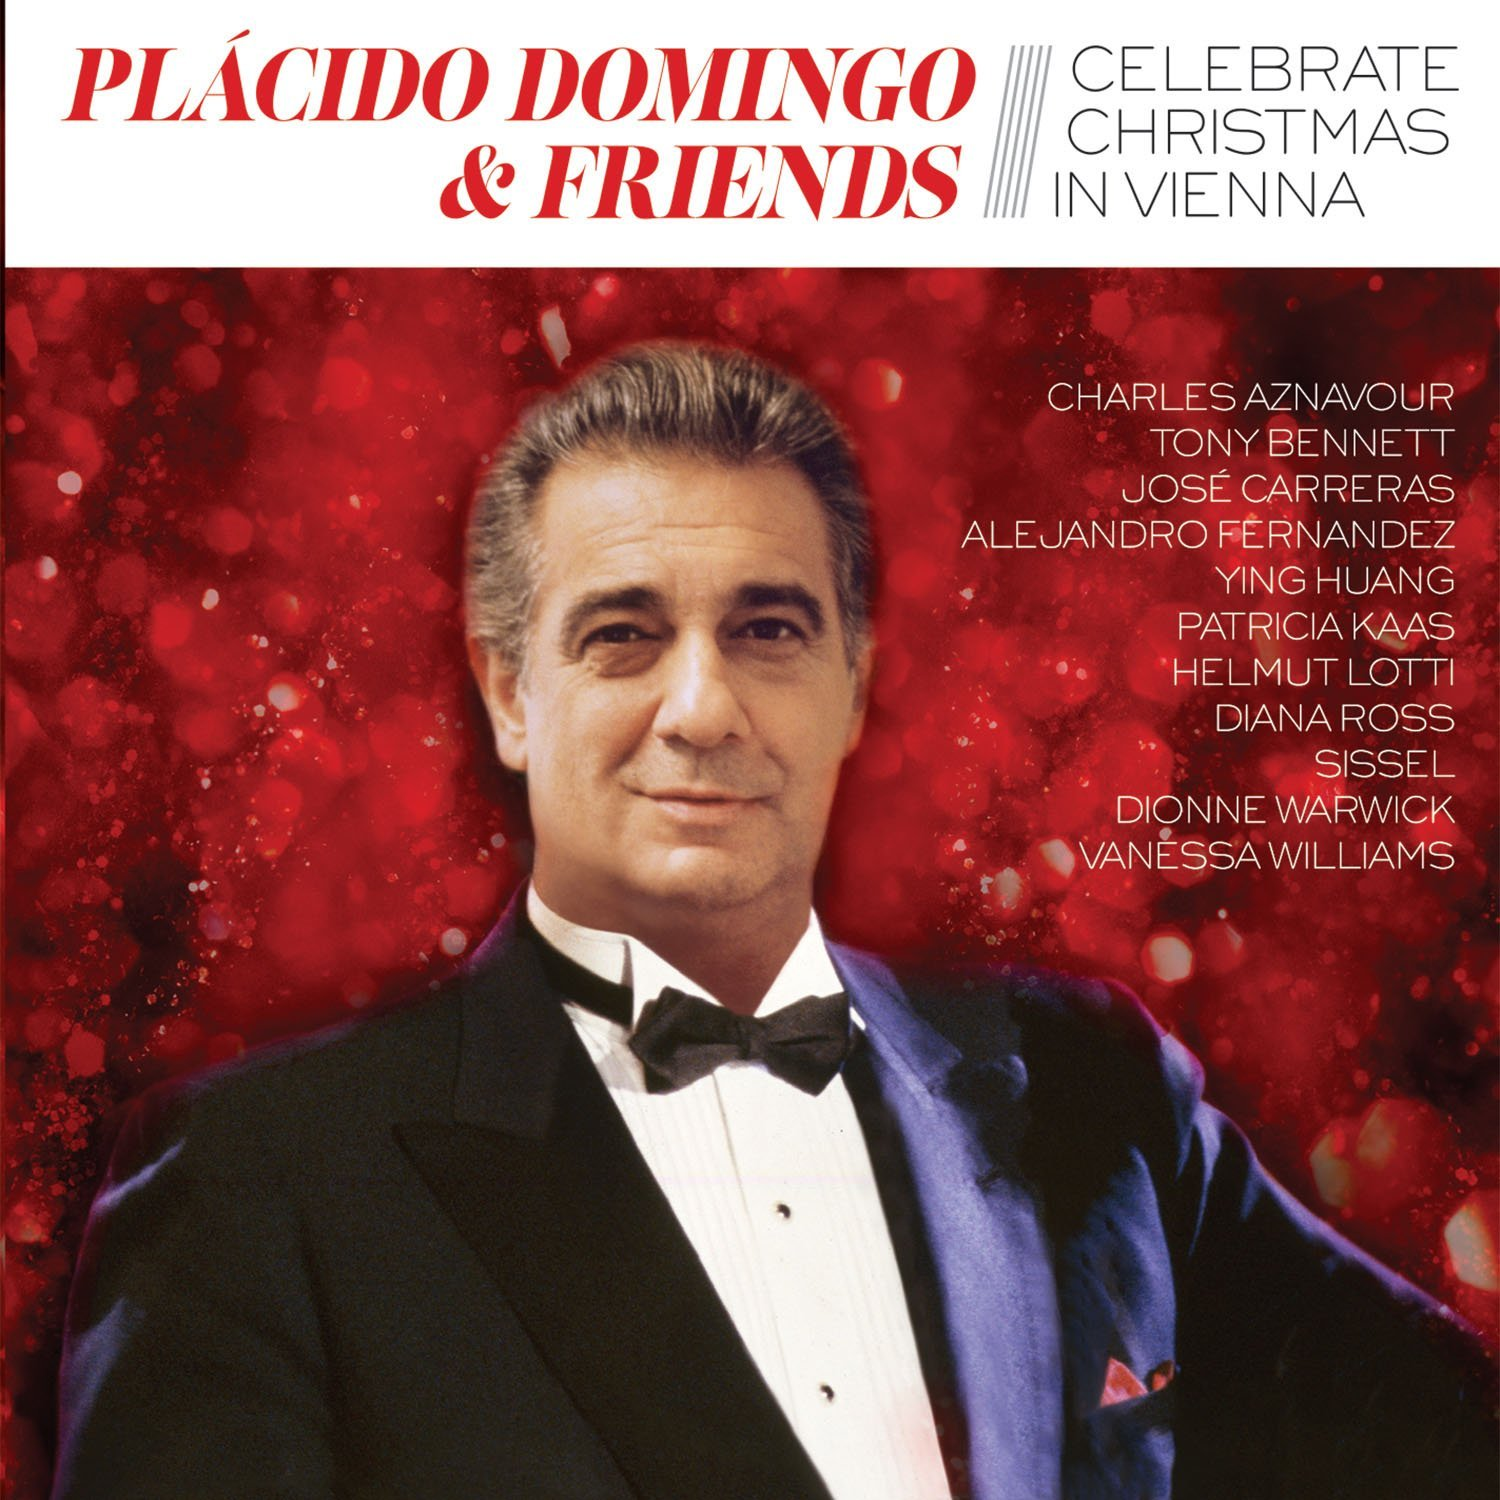 Placido Domingo & friends